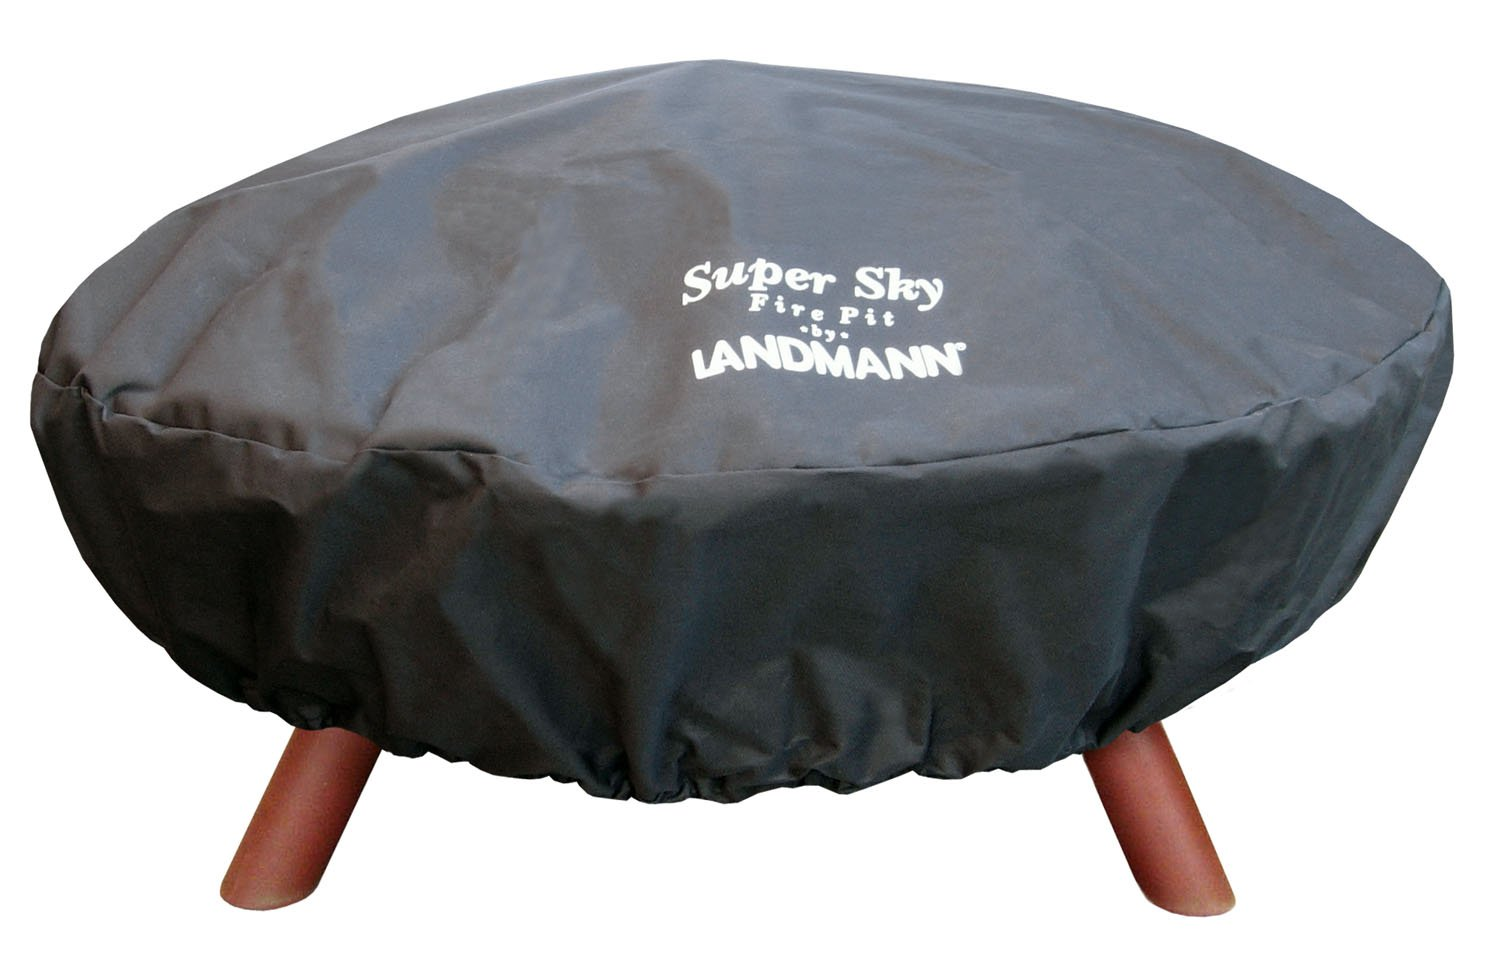 Landmann USA 29321 Super Sky Fire Pit Cover